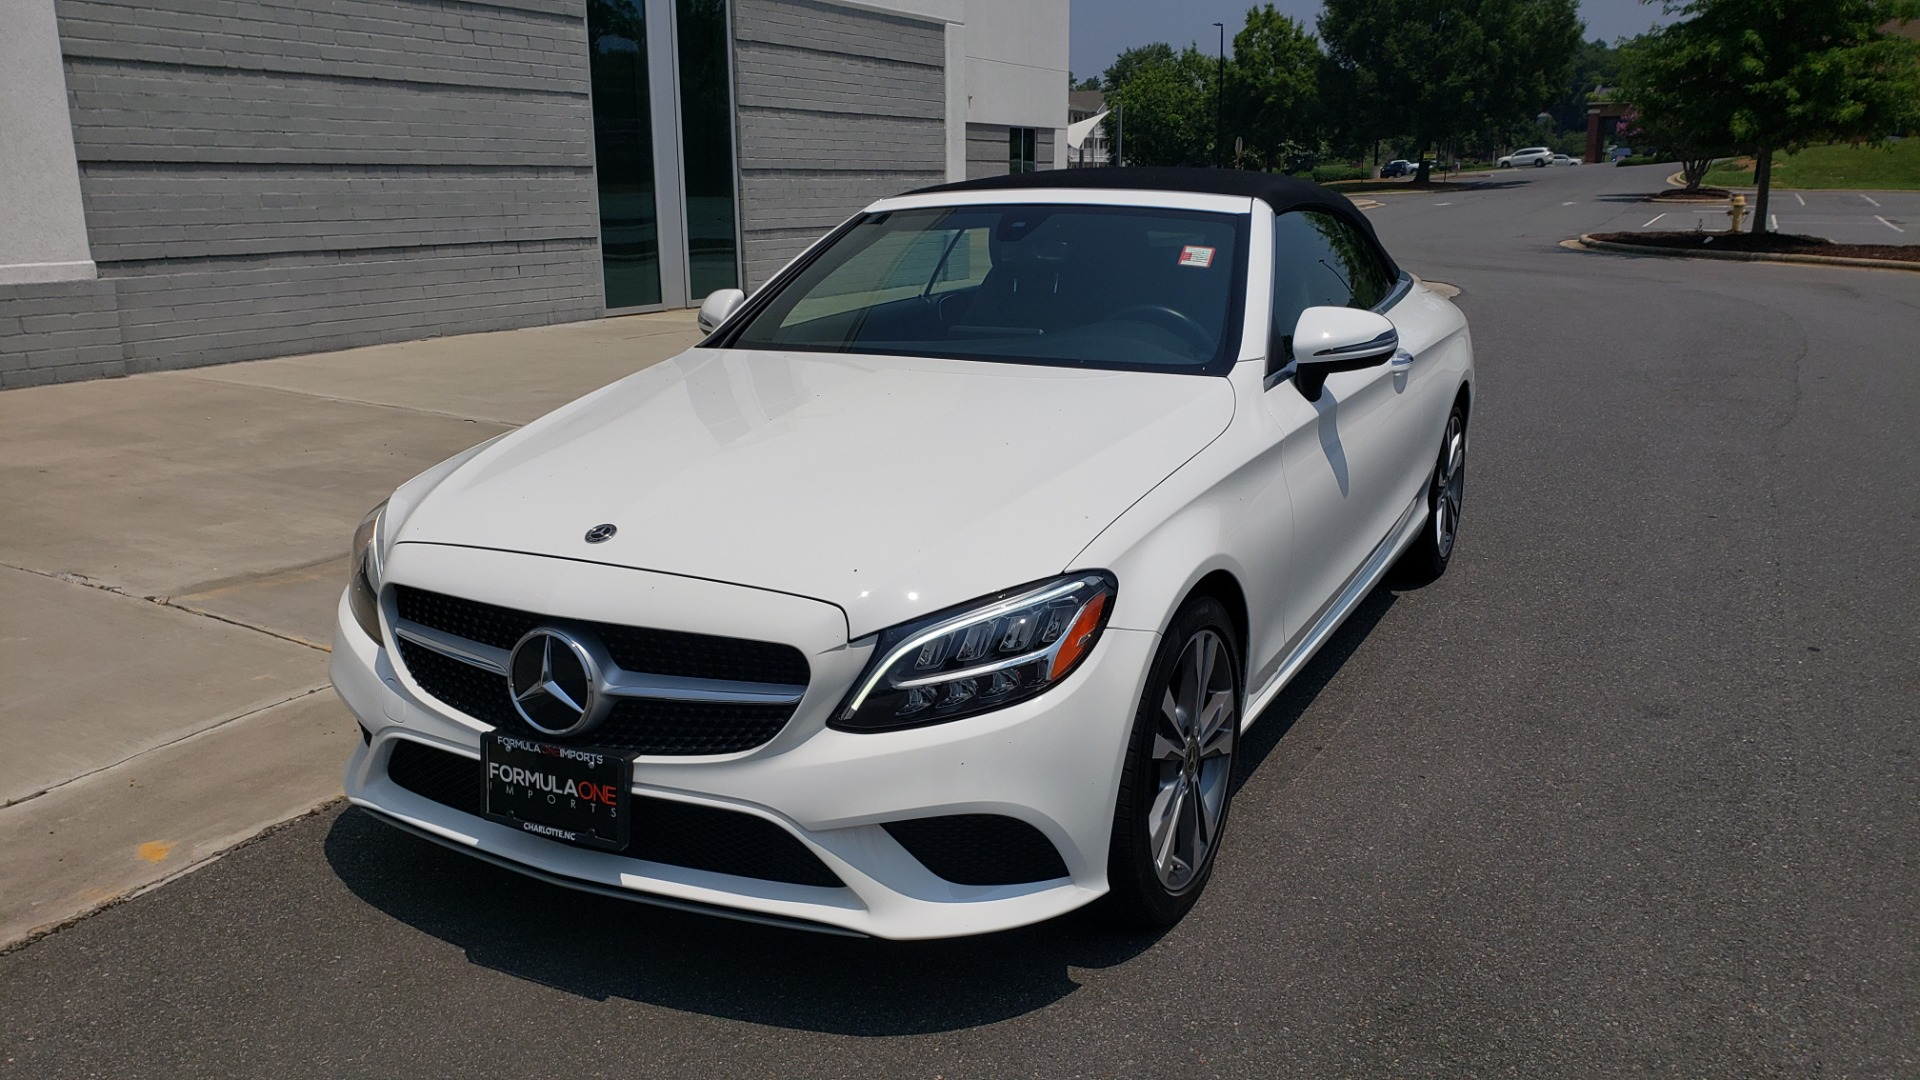 Used 2019 Mercedes-Benz C-CLASS C 300 CABRIOLET 2.0L / AUTO / NAV / HD RADIO / REARVIEW for sale $46,995 at Formula Imports in Charlotte NC 28227 6